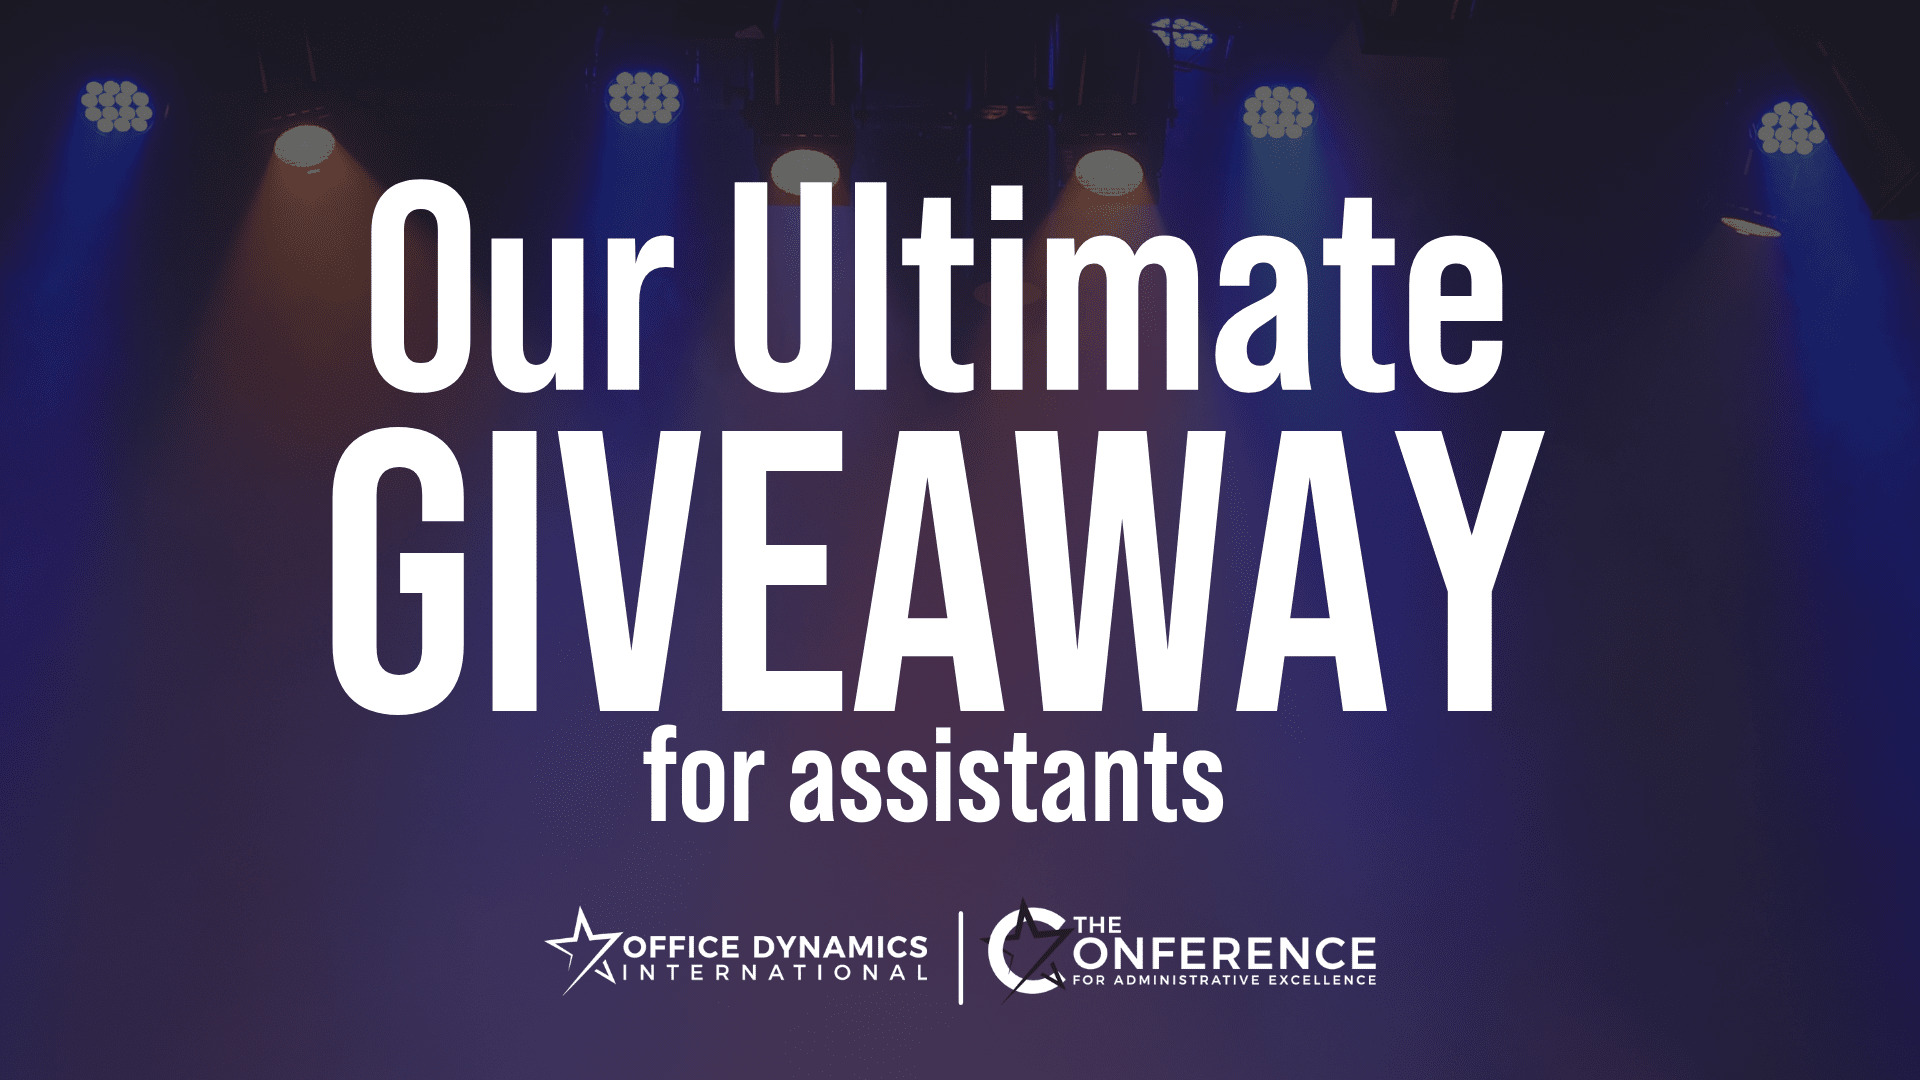 Our Ultimate Administrative Assistant Giveaway